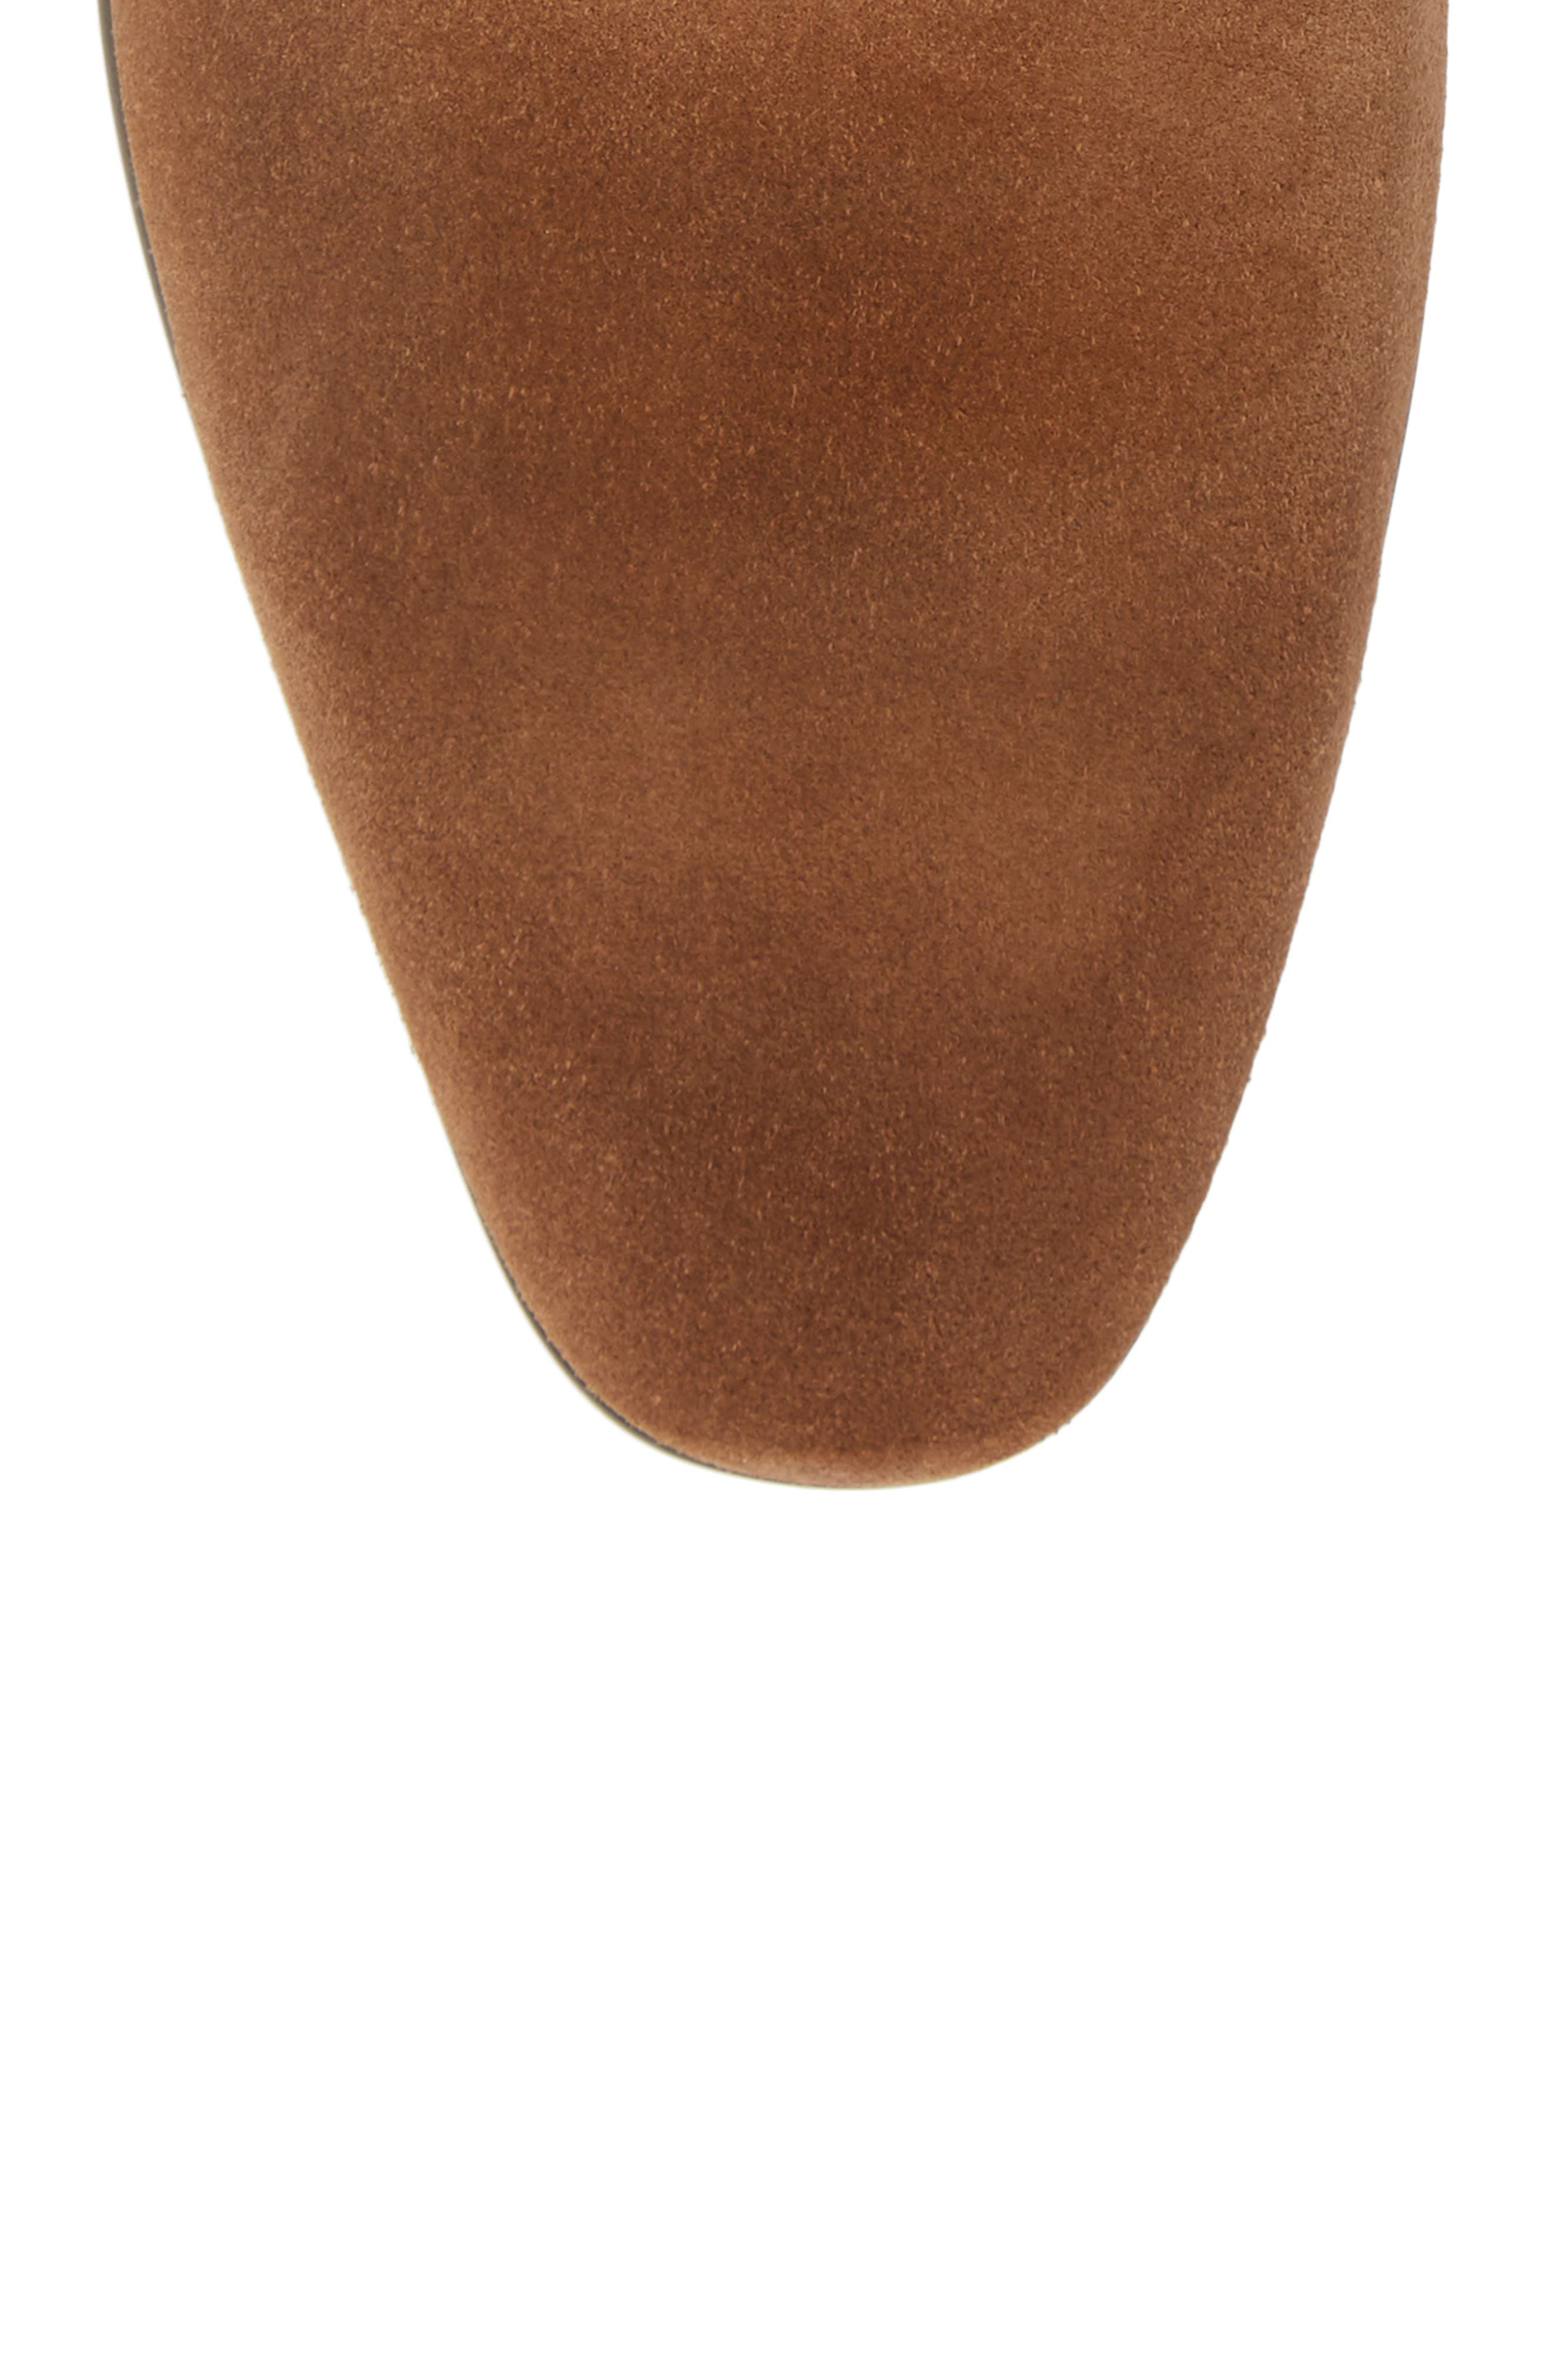 Edward Chelsea Boot,                             Alternate thumbnail 5, color,                             CHESTNUT SUEDE